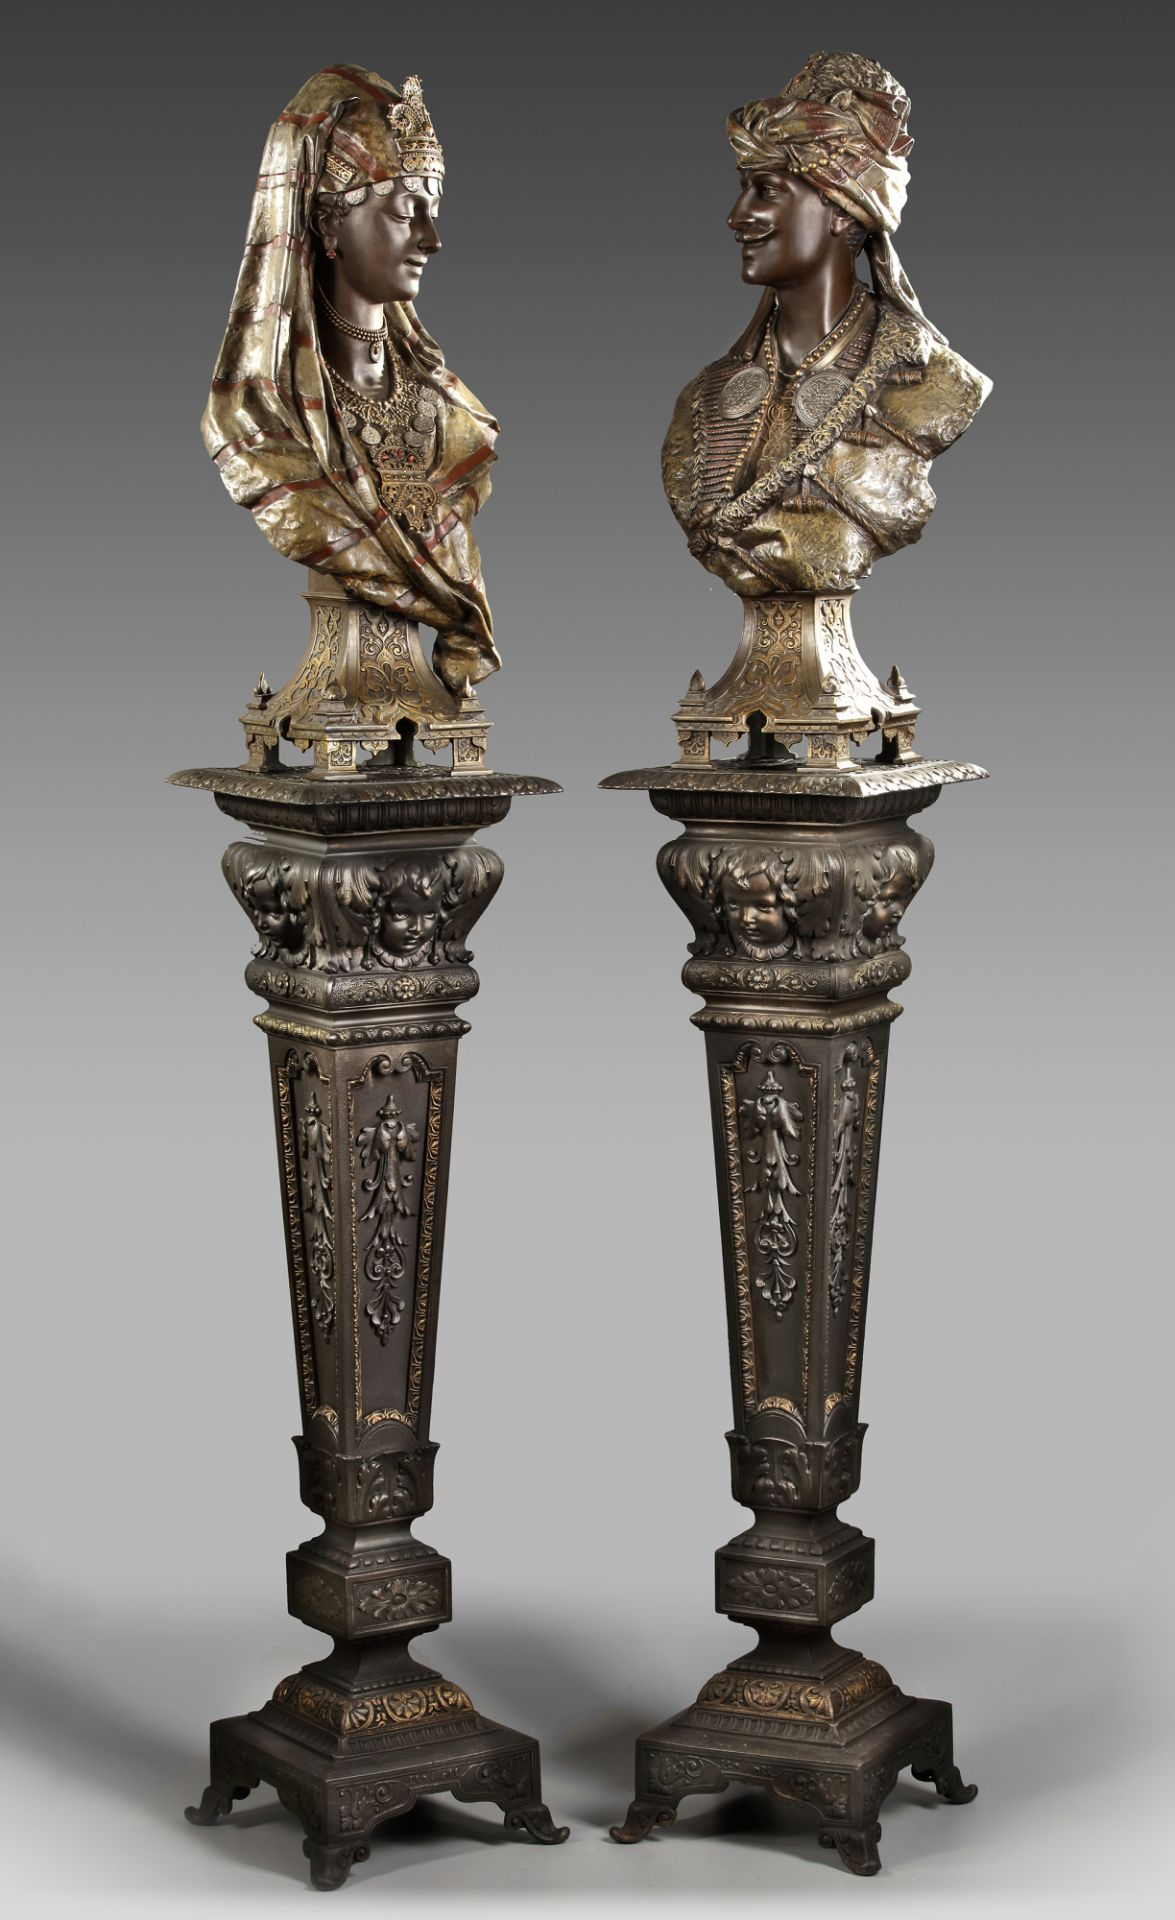 A PAIR OF BUSTS AFTER L. HOTTOT, LATE 19TH CENTURY - Image 2 of 5